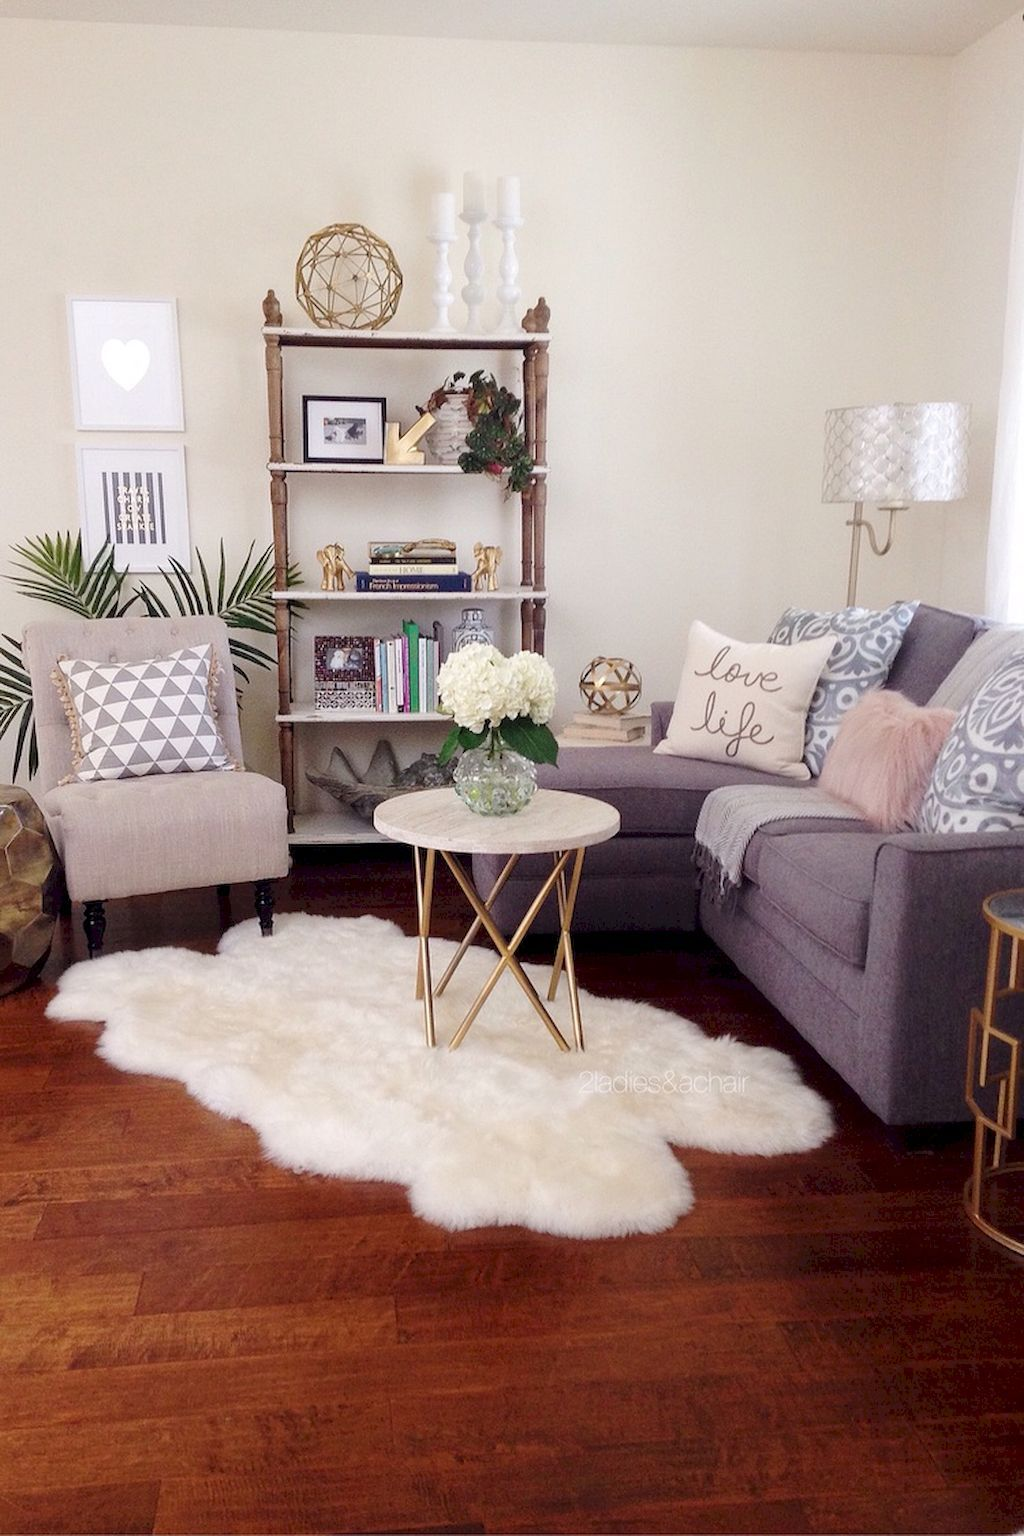 50 Awesome Apartment Living Room Decorating Ideas  Living Room Classy Apartment Living Room Decor Ideas Decorating Design